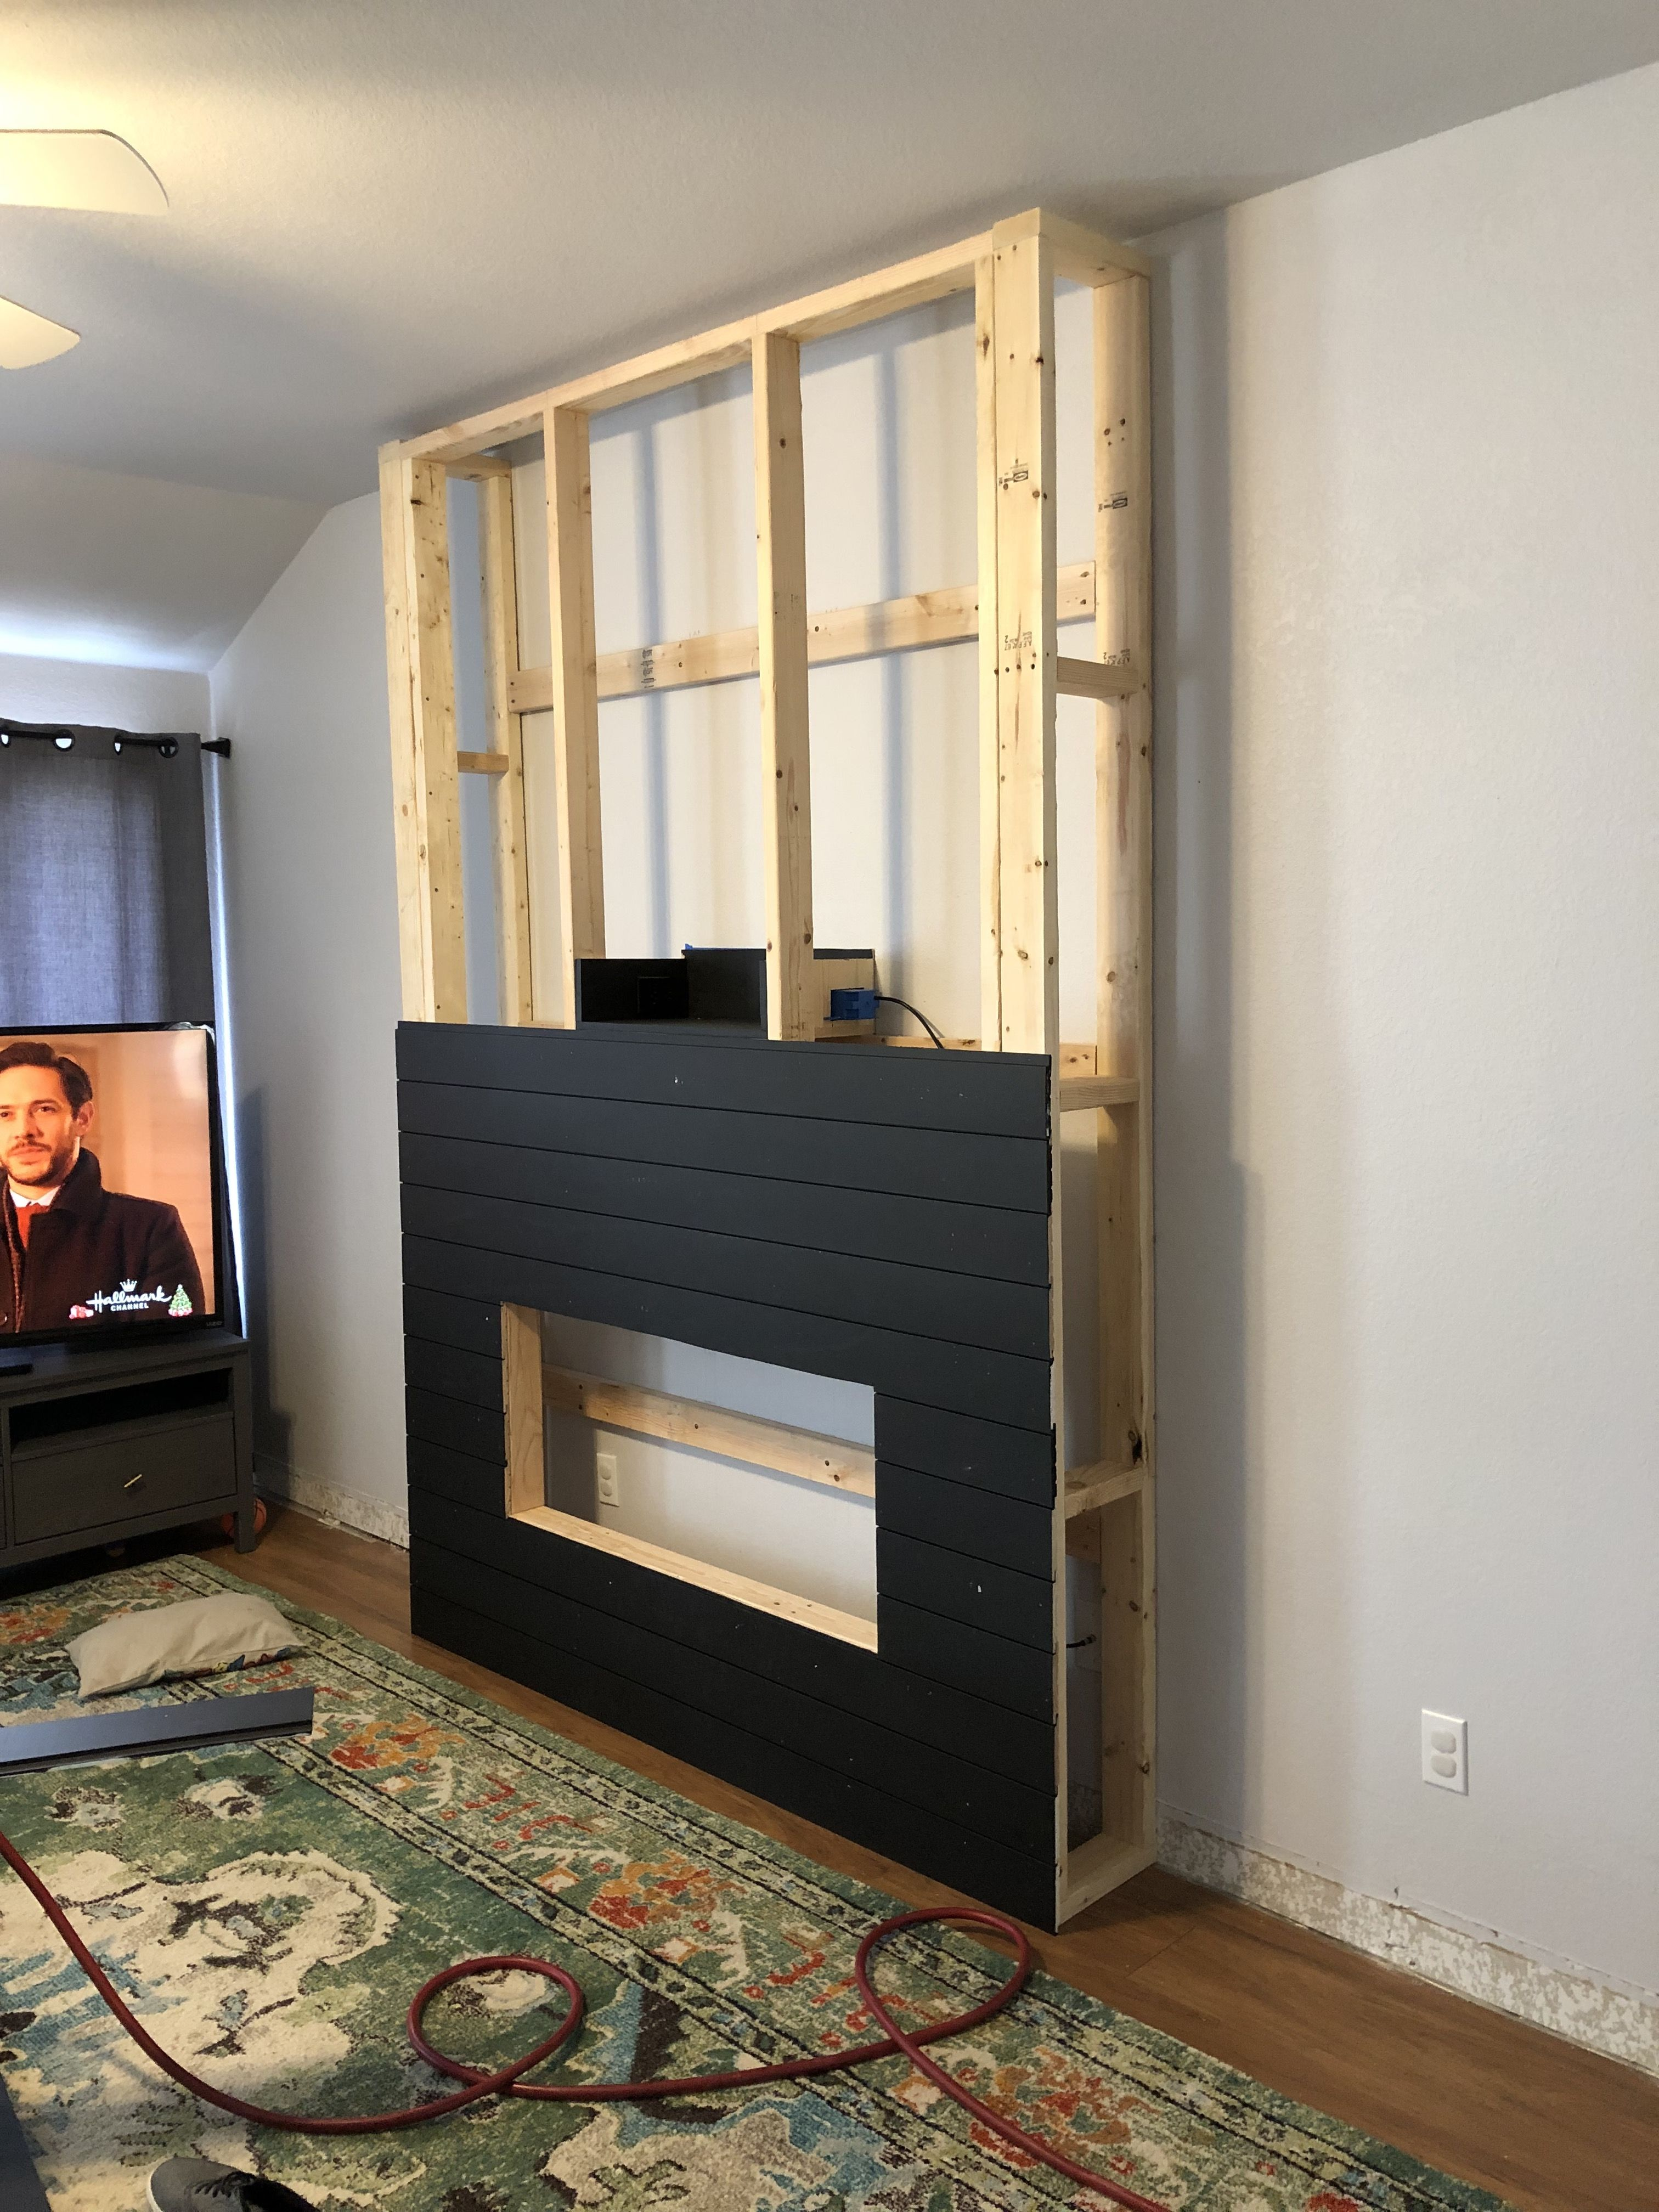 Diy Electric Fireplace Build Build A Fireplace Fireplace Built Ins Living Room Tv